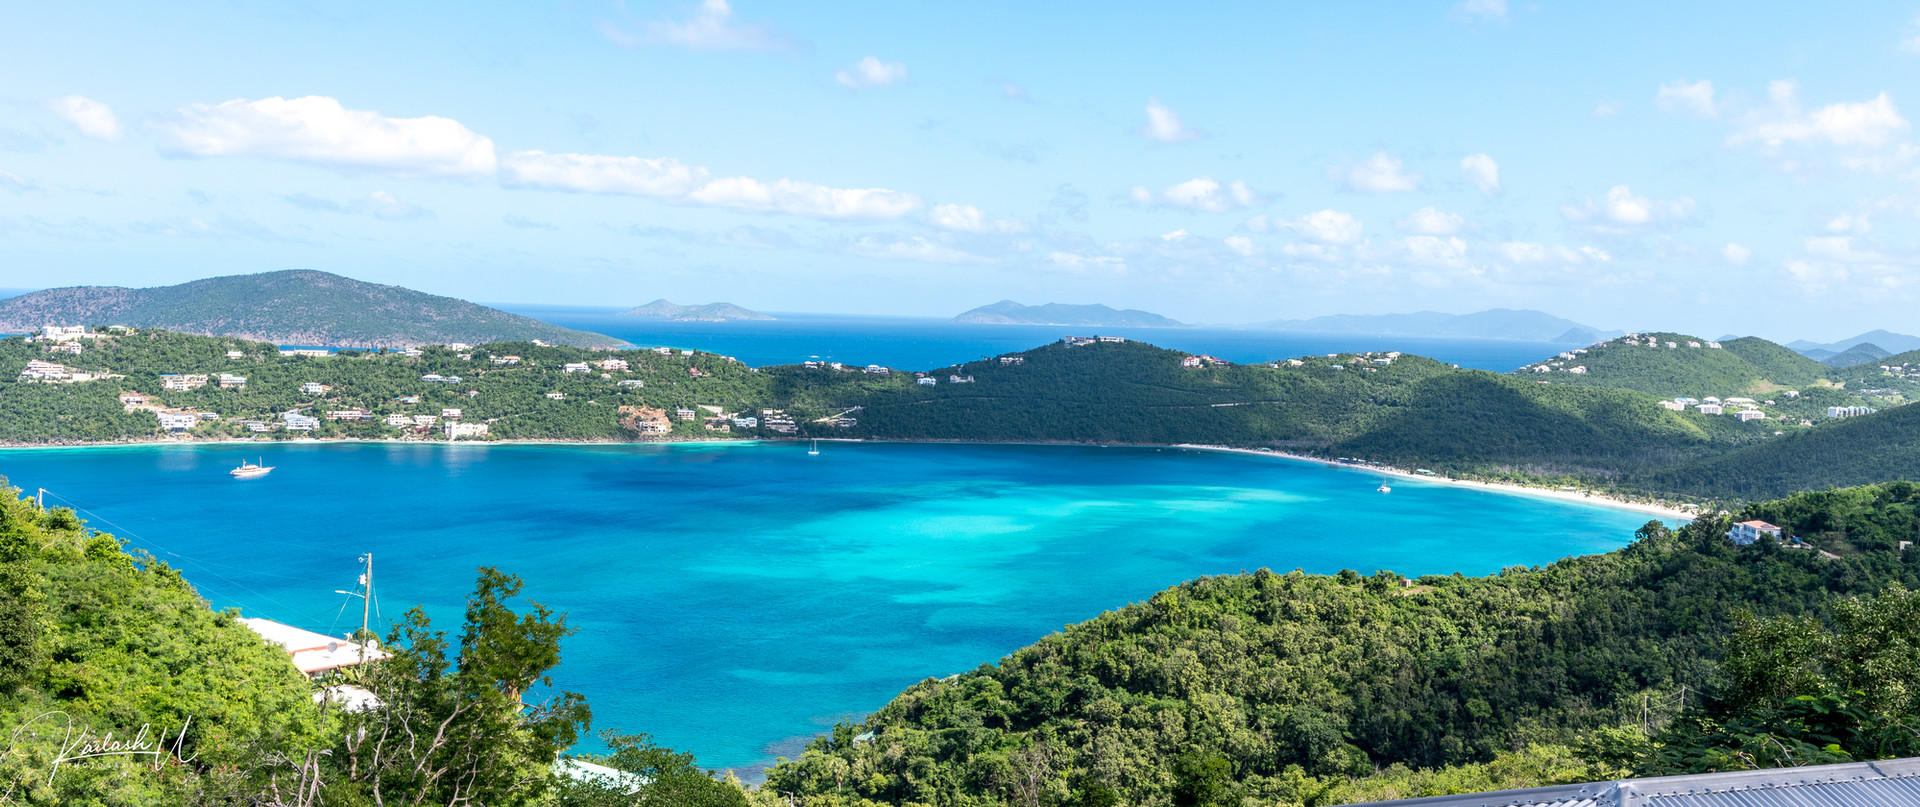 Magen's Bay, St. Thomas, The Virgin Islands of the United States